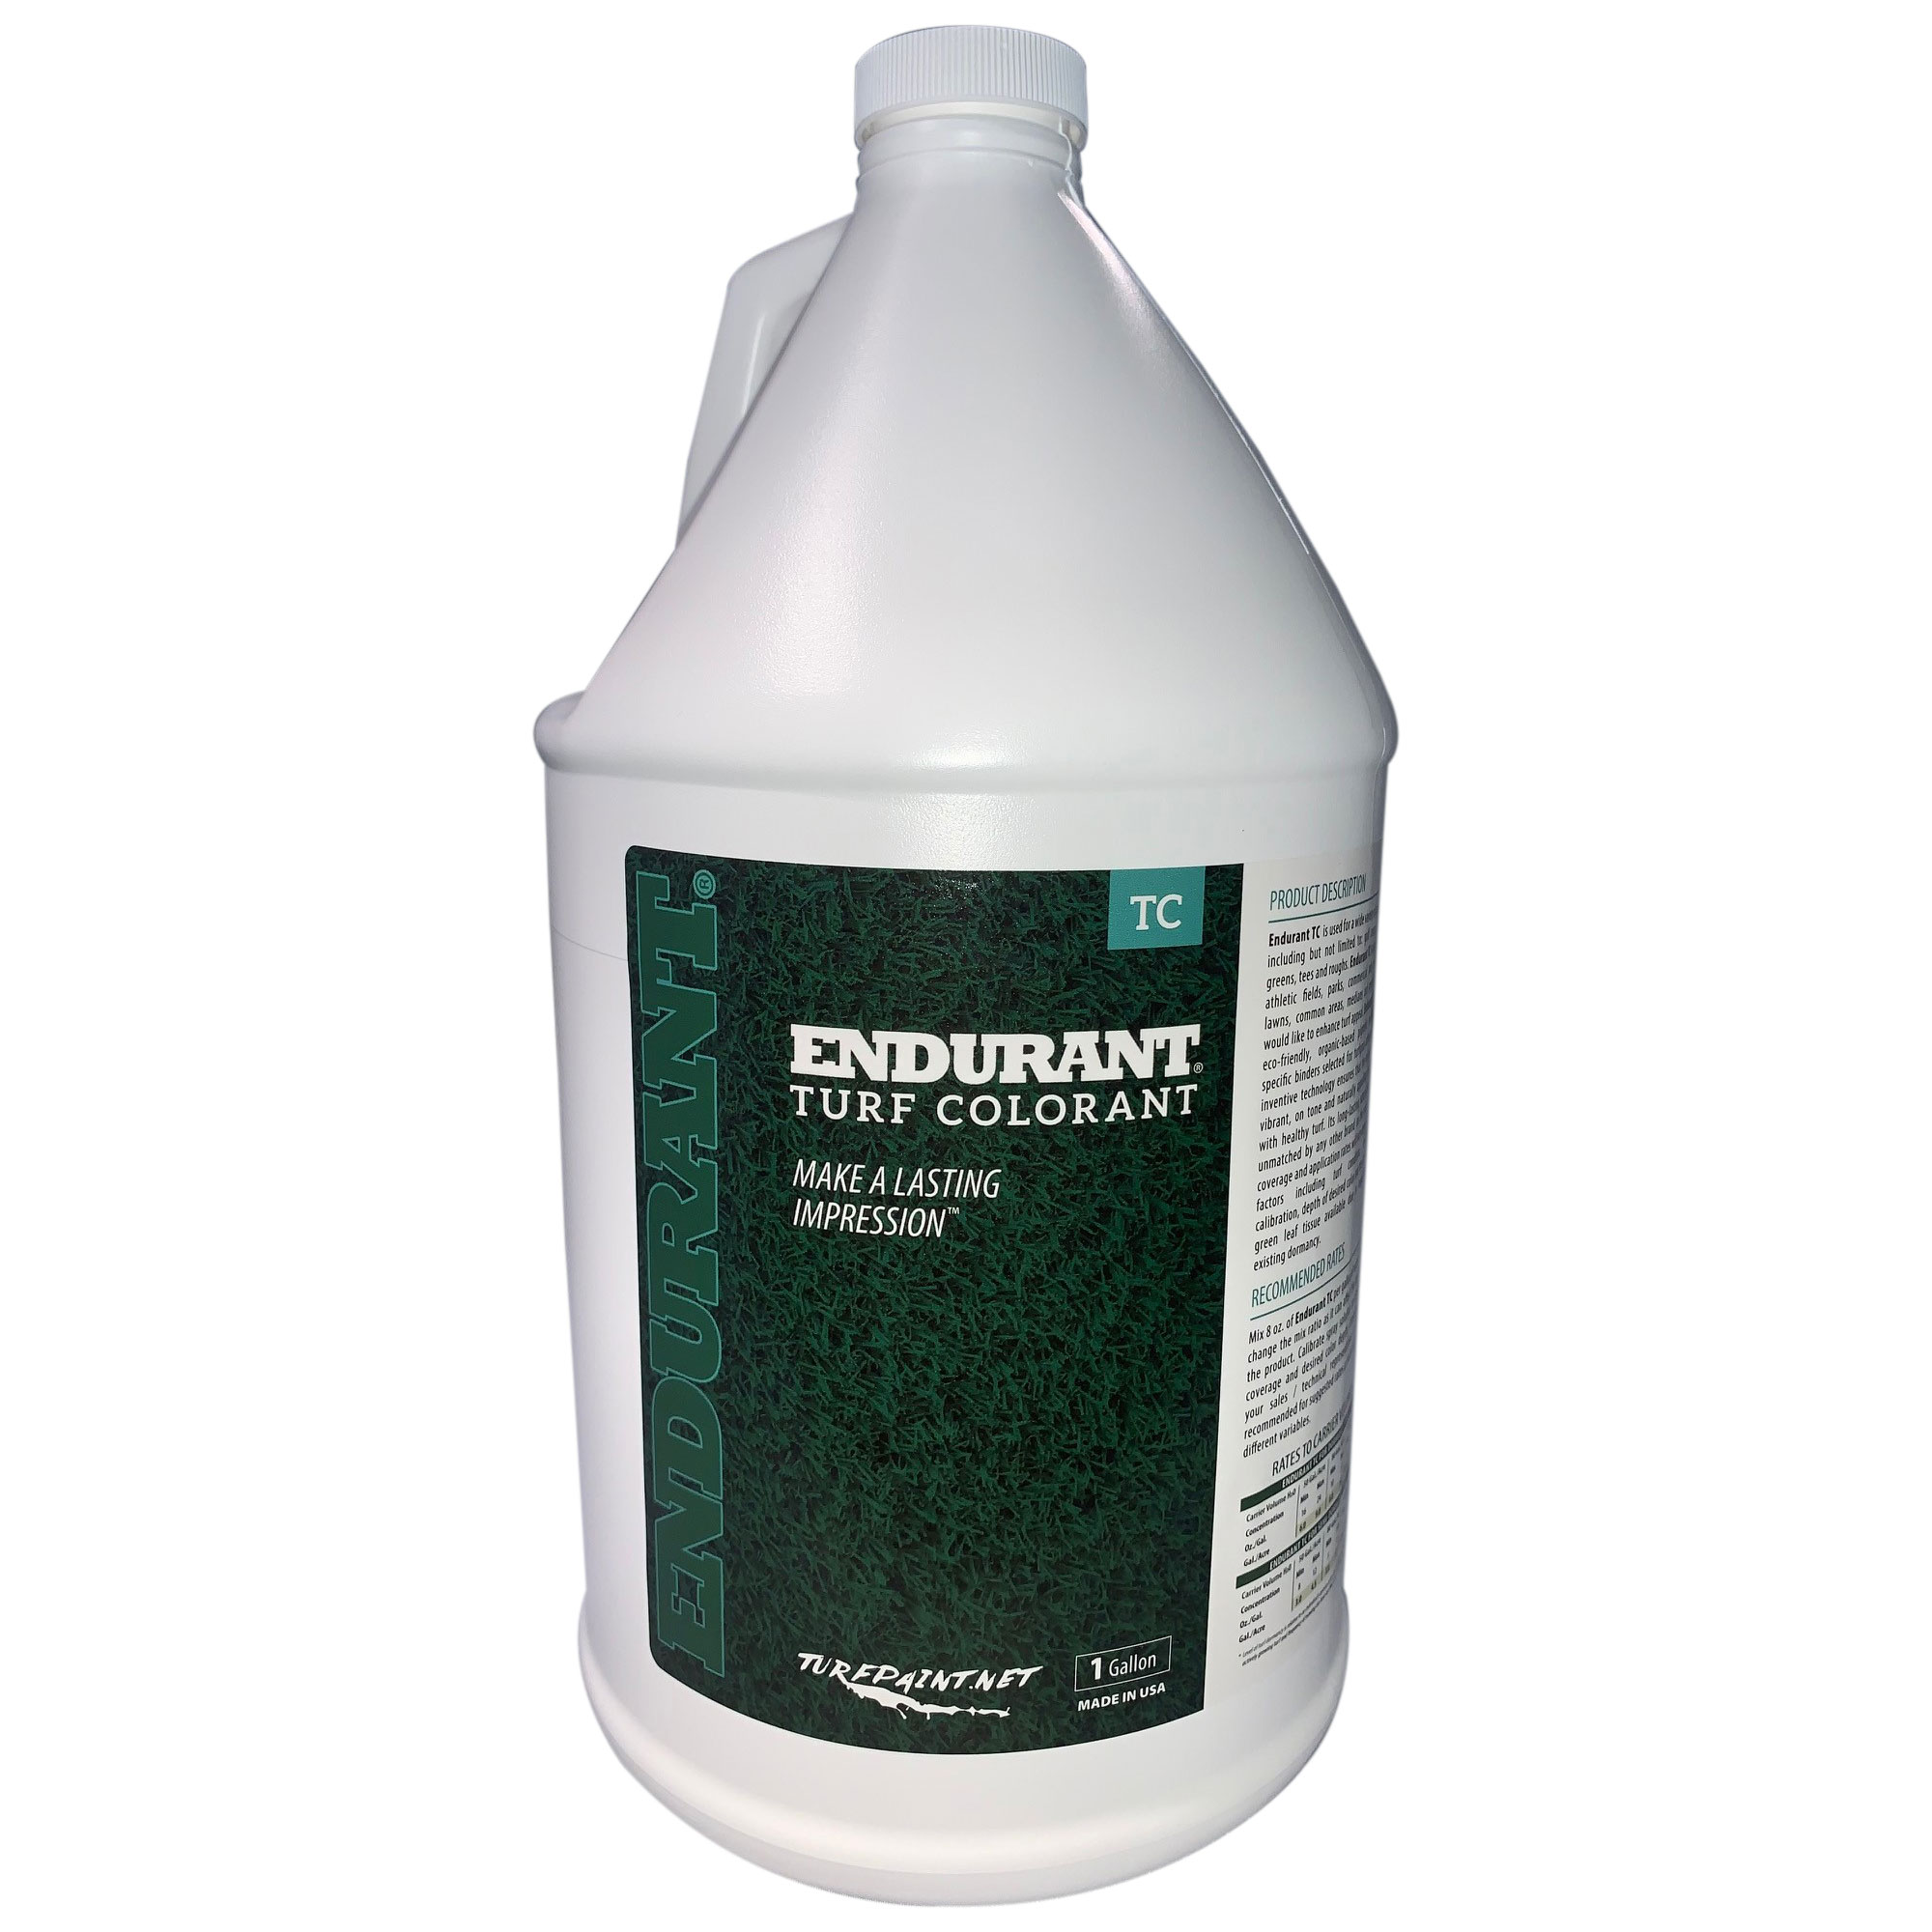 Endurant Turf Colorant